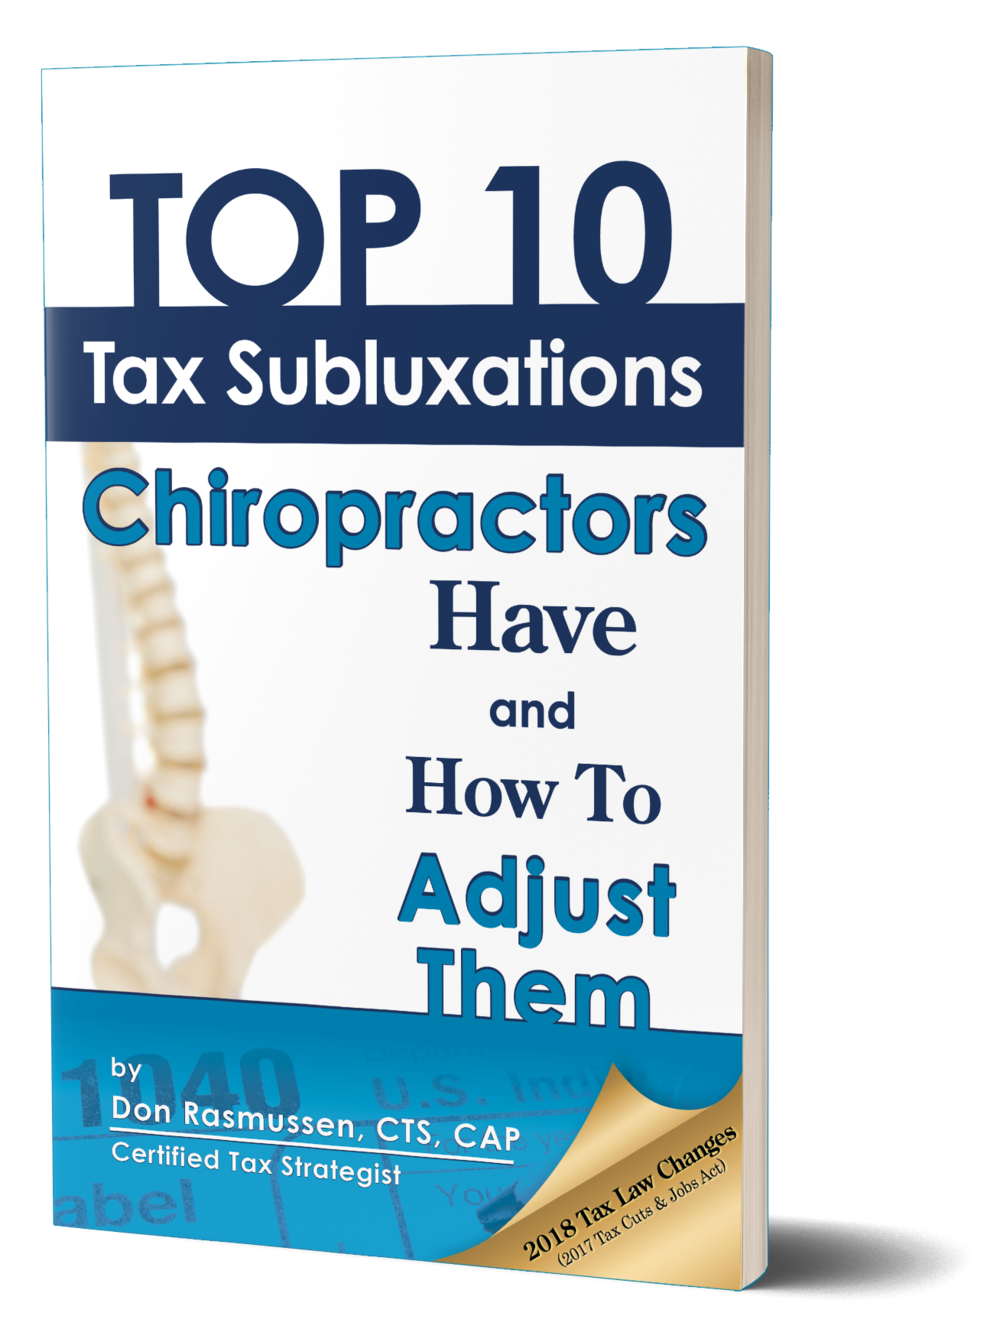 Download the first chapter of the 'Top 10 Tax Subluxations Chiropractors Have and How to Adjust Them' for FREE -